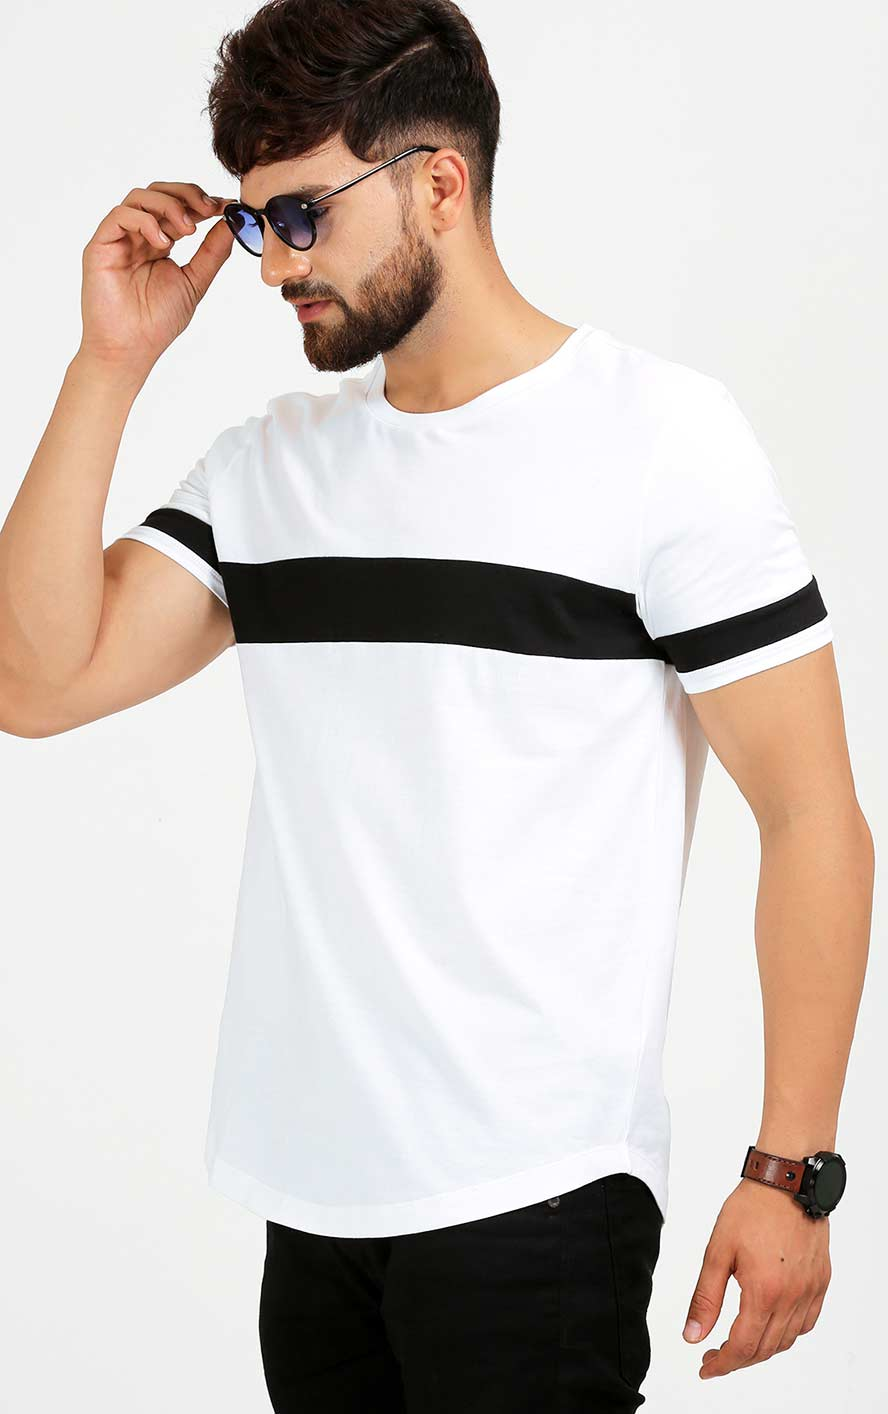 Image result for Casual t shirtsfor men's